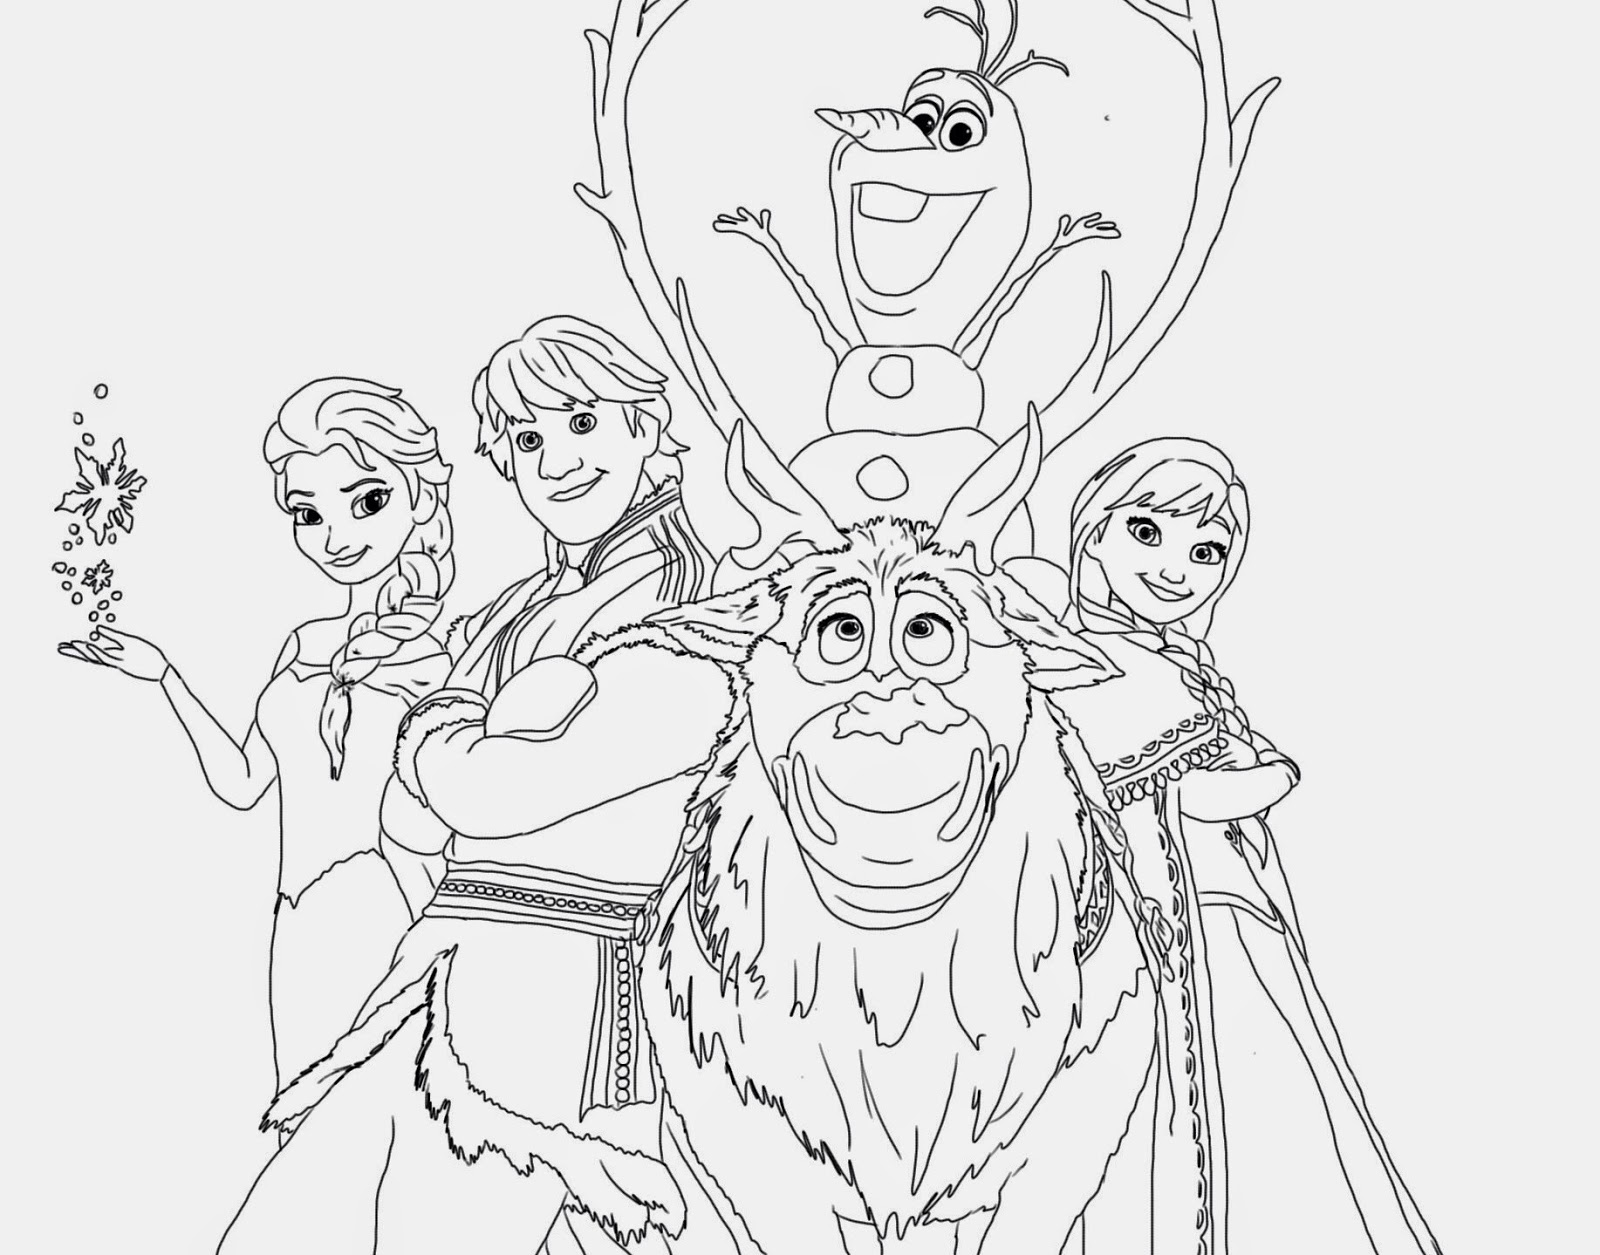 disney free printable coloring pages - Disney Easter Coloring Pages MomJunction